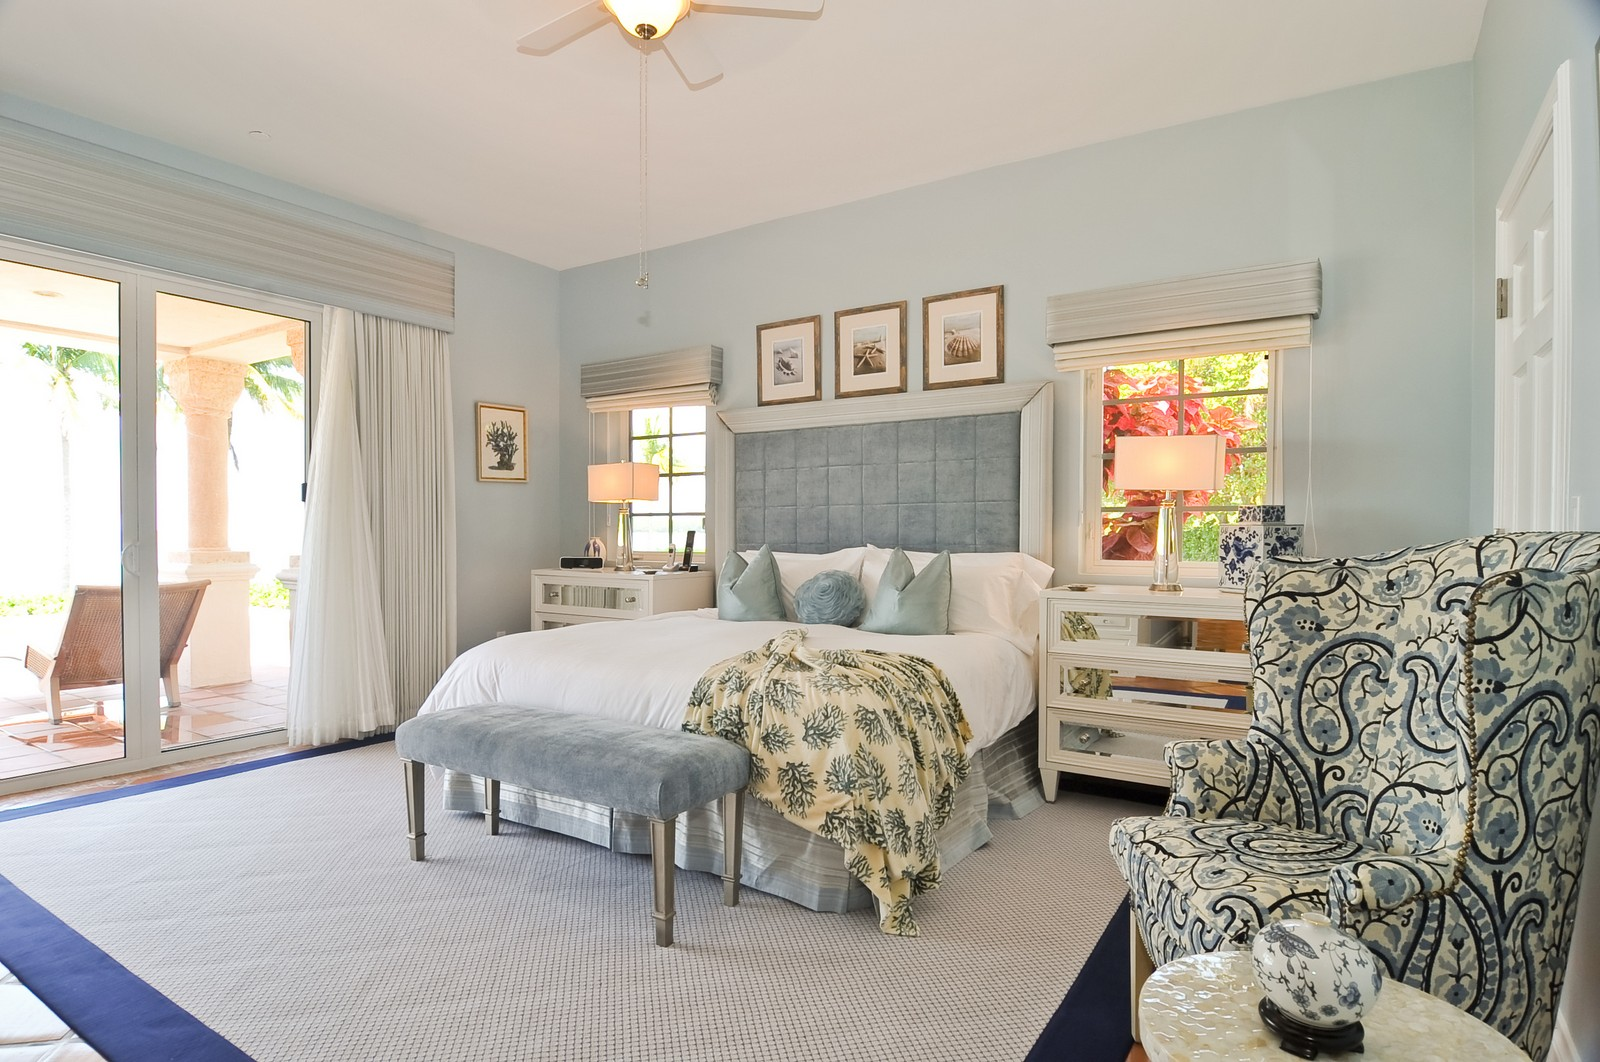 Real Estate Photography - 15312 Fisher Island Dr, Fisher Island, FL, 33109 - Master Bedroom